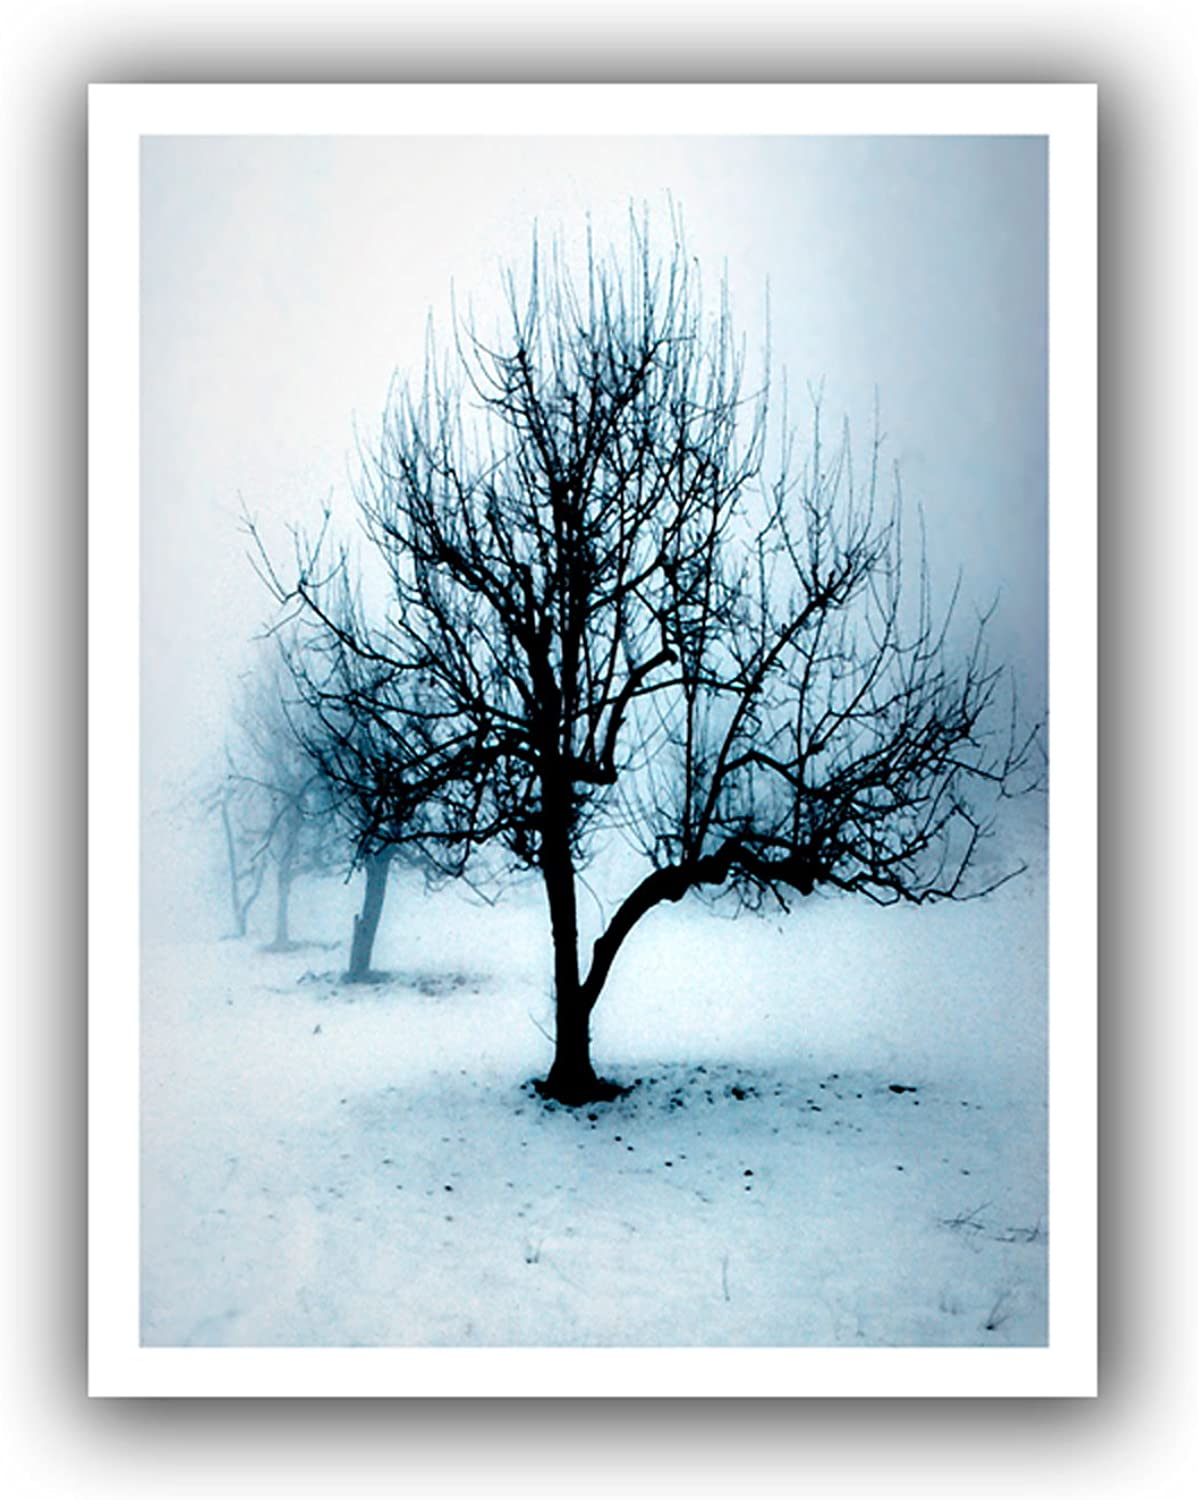 ArtWall Dean Uhlinger Winter Orchard Unwrapped Canvas Artwork, 22 by 28, Holds 18 by 24-Inch Image